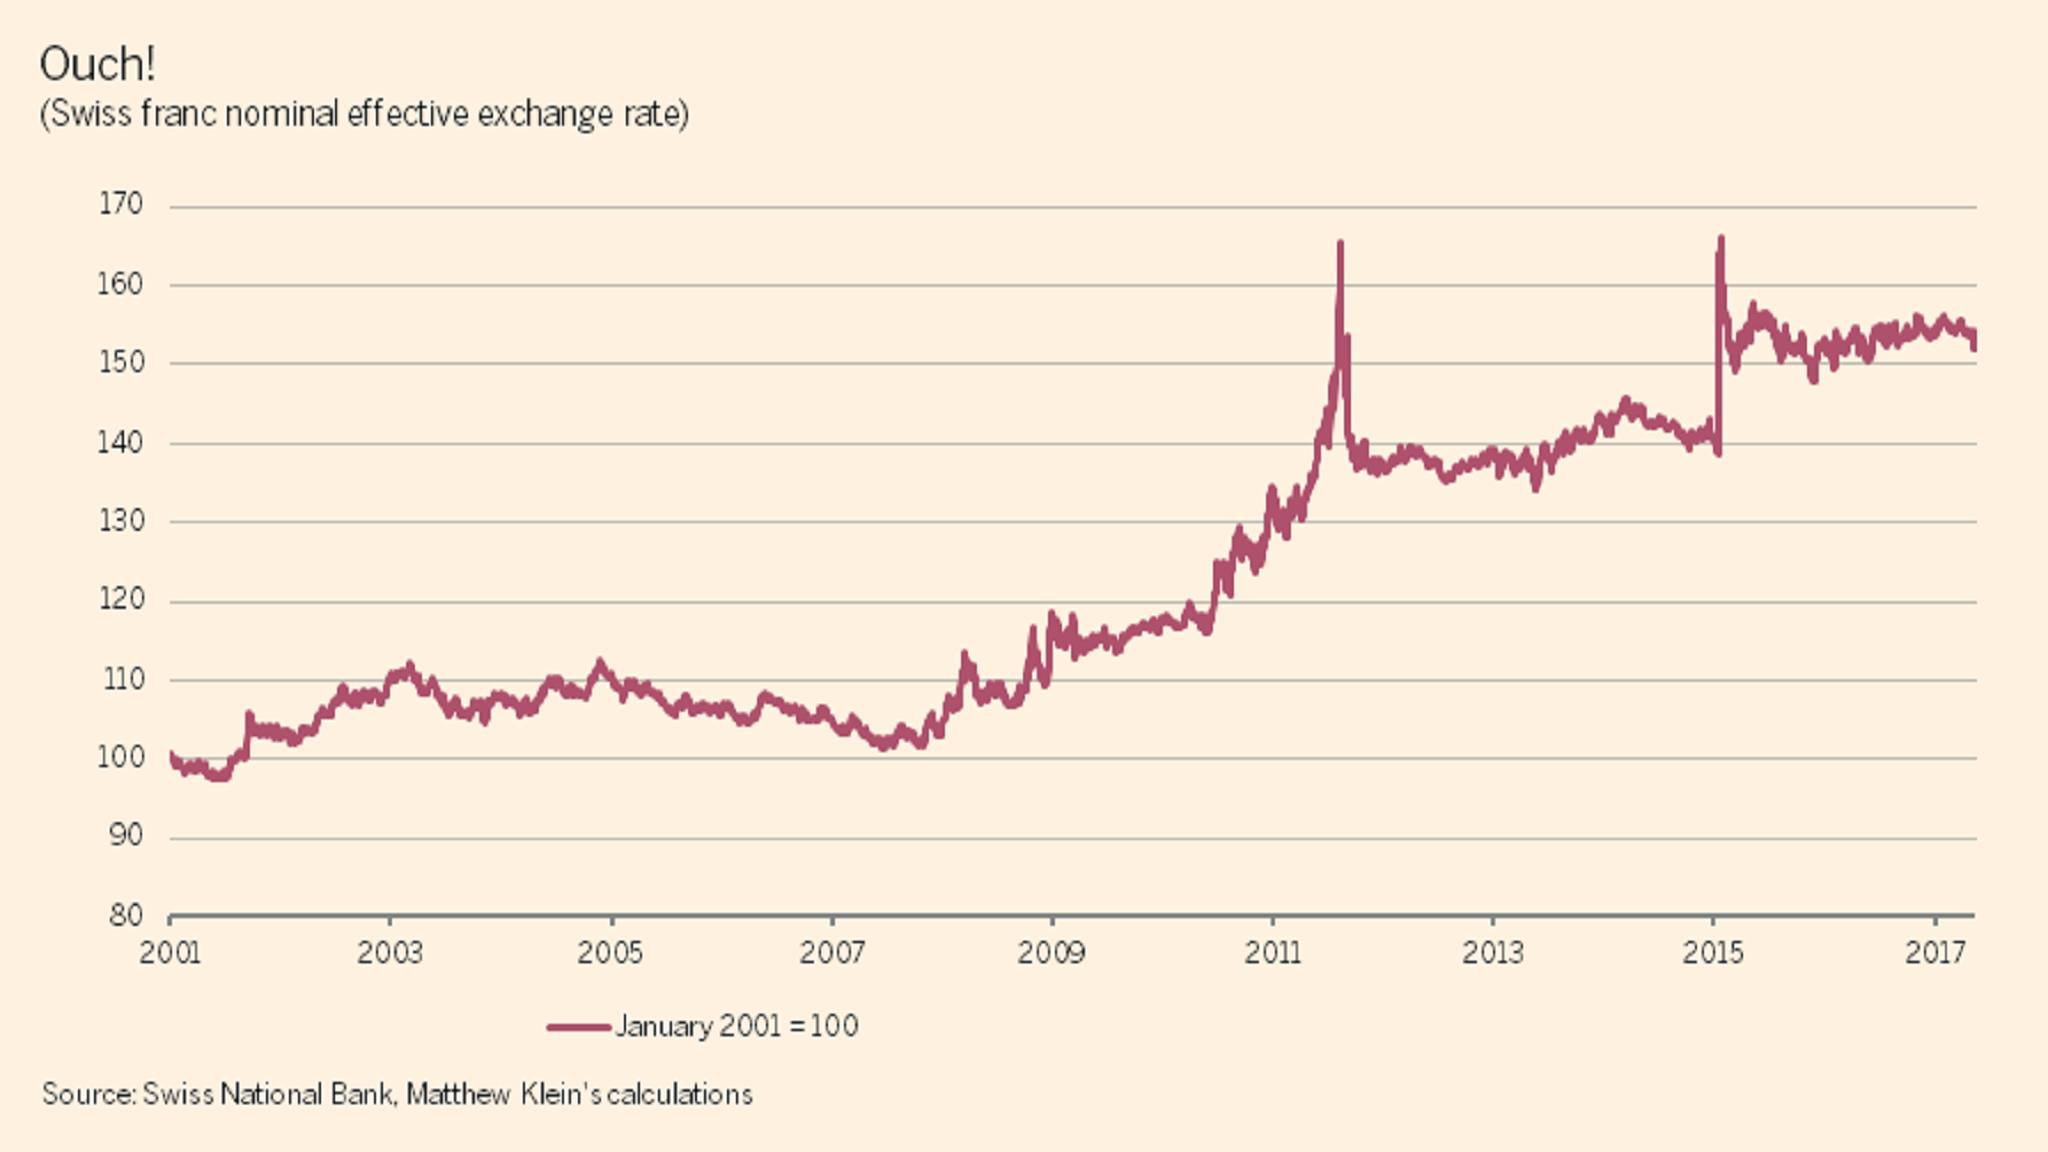 Have the Swiss National Bank's currency interventions